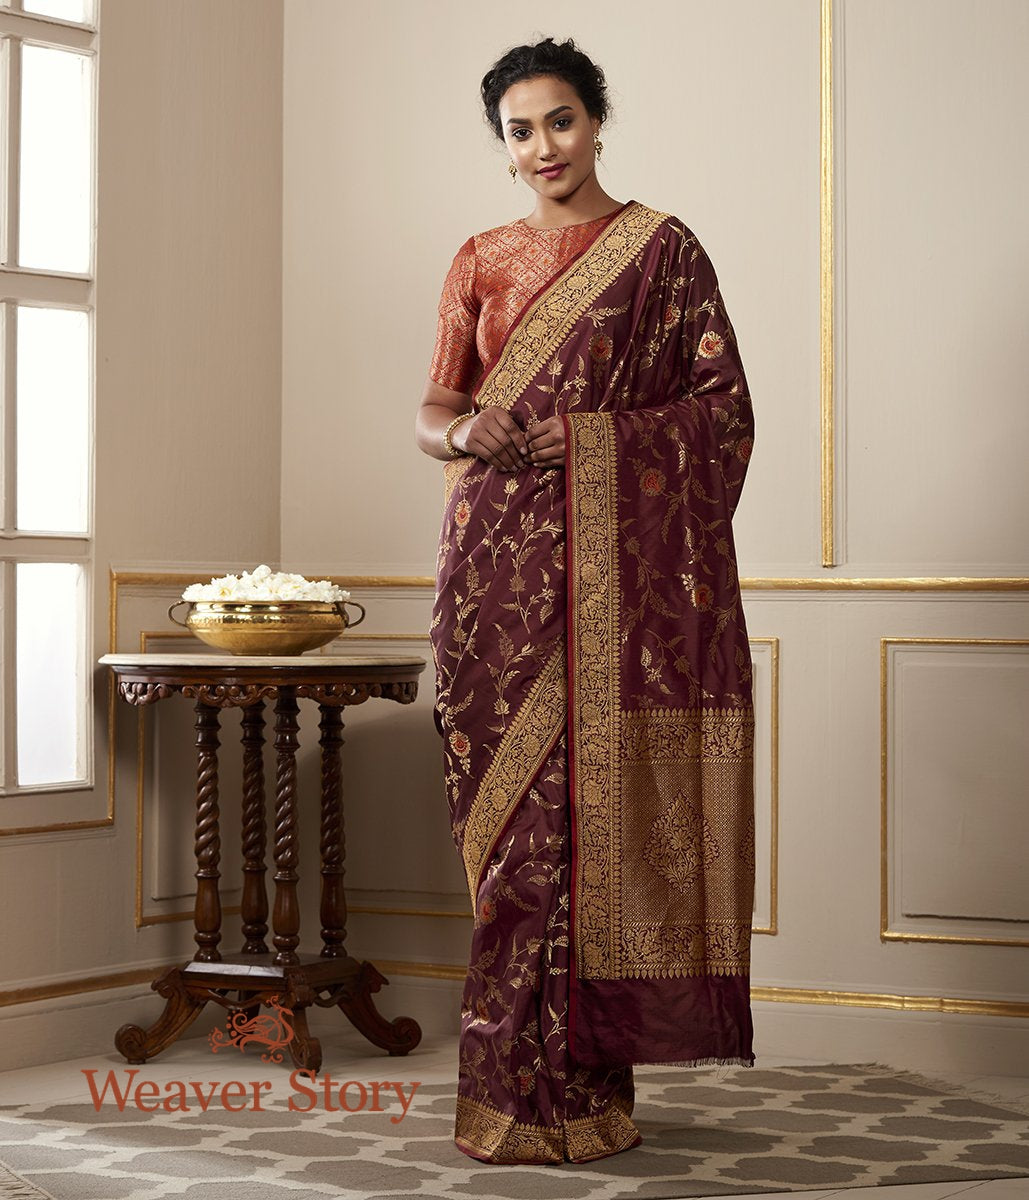 Handwoven Coffee Brown Cutwork Meenakari Jangla in Fine Katan Silk